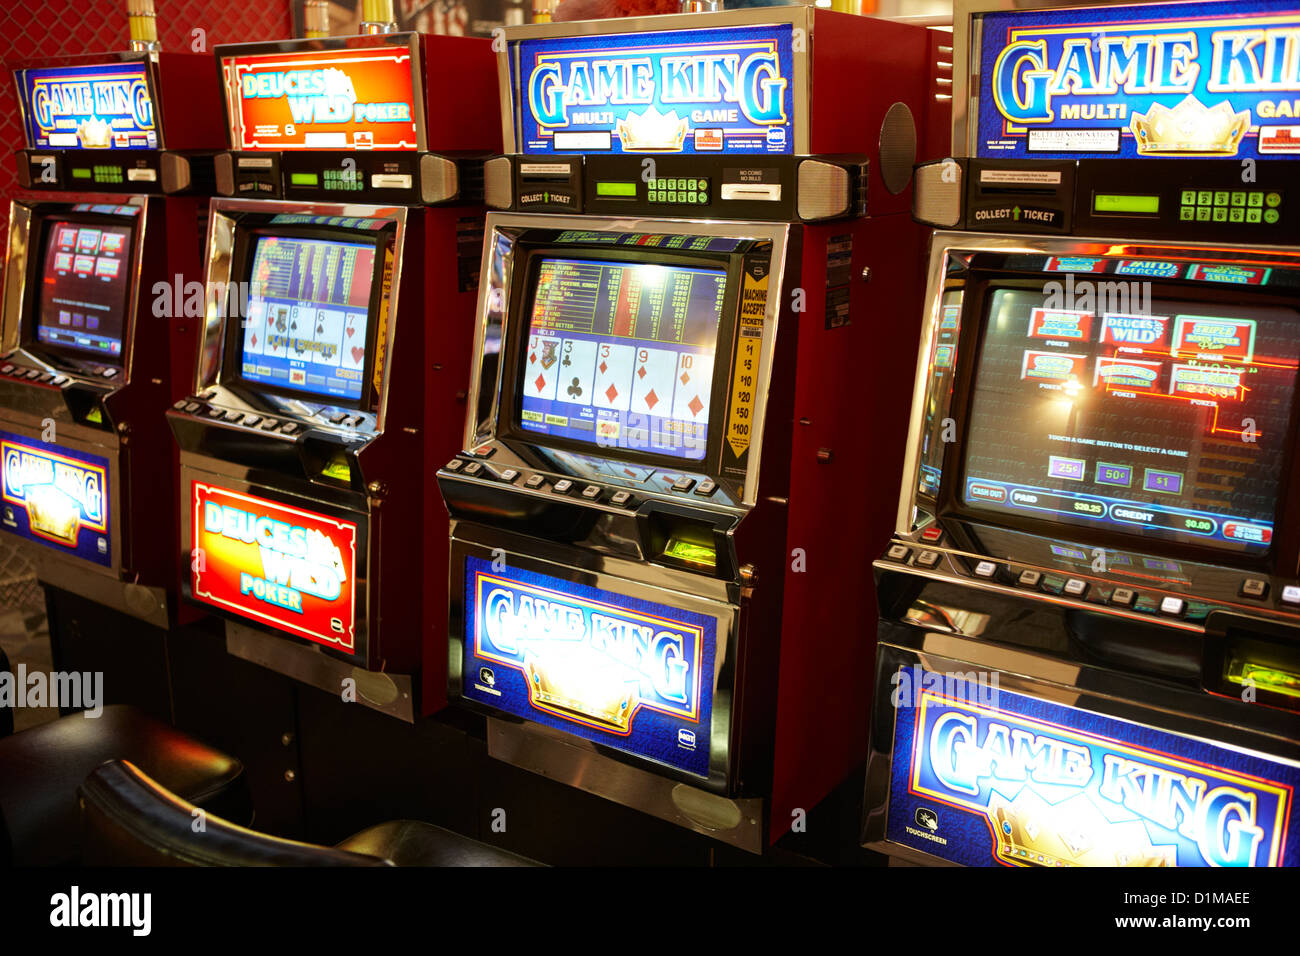 video poker fobt fixed odds betting terminals gaming gambling machines Las Vegas Nevada USA - Stock Image